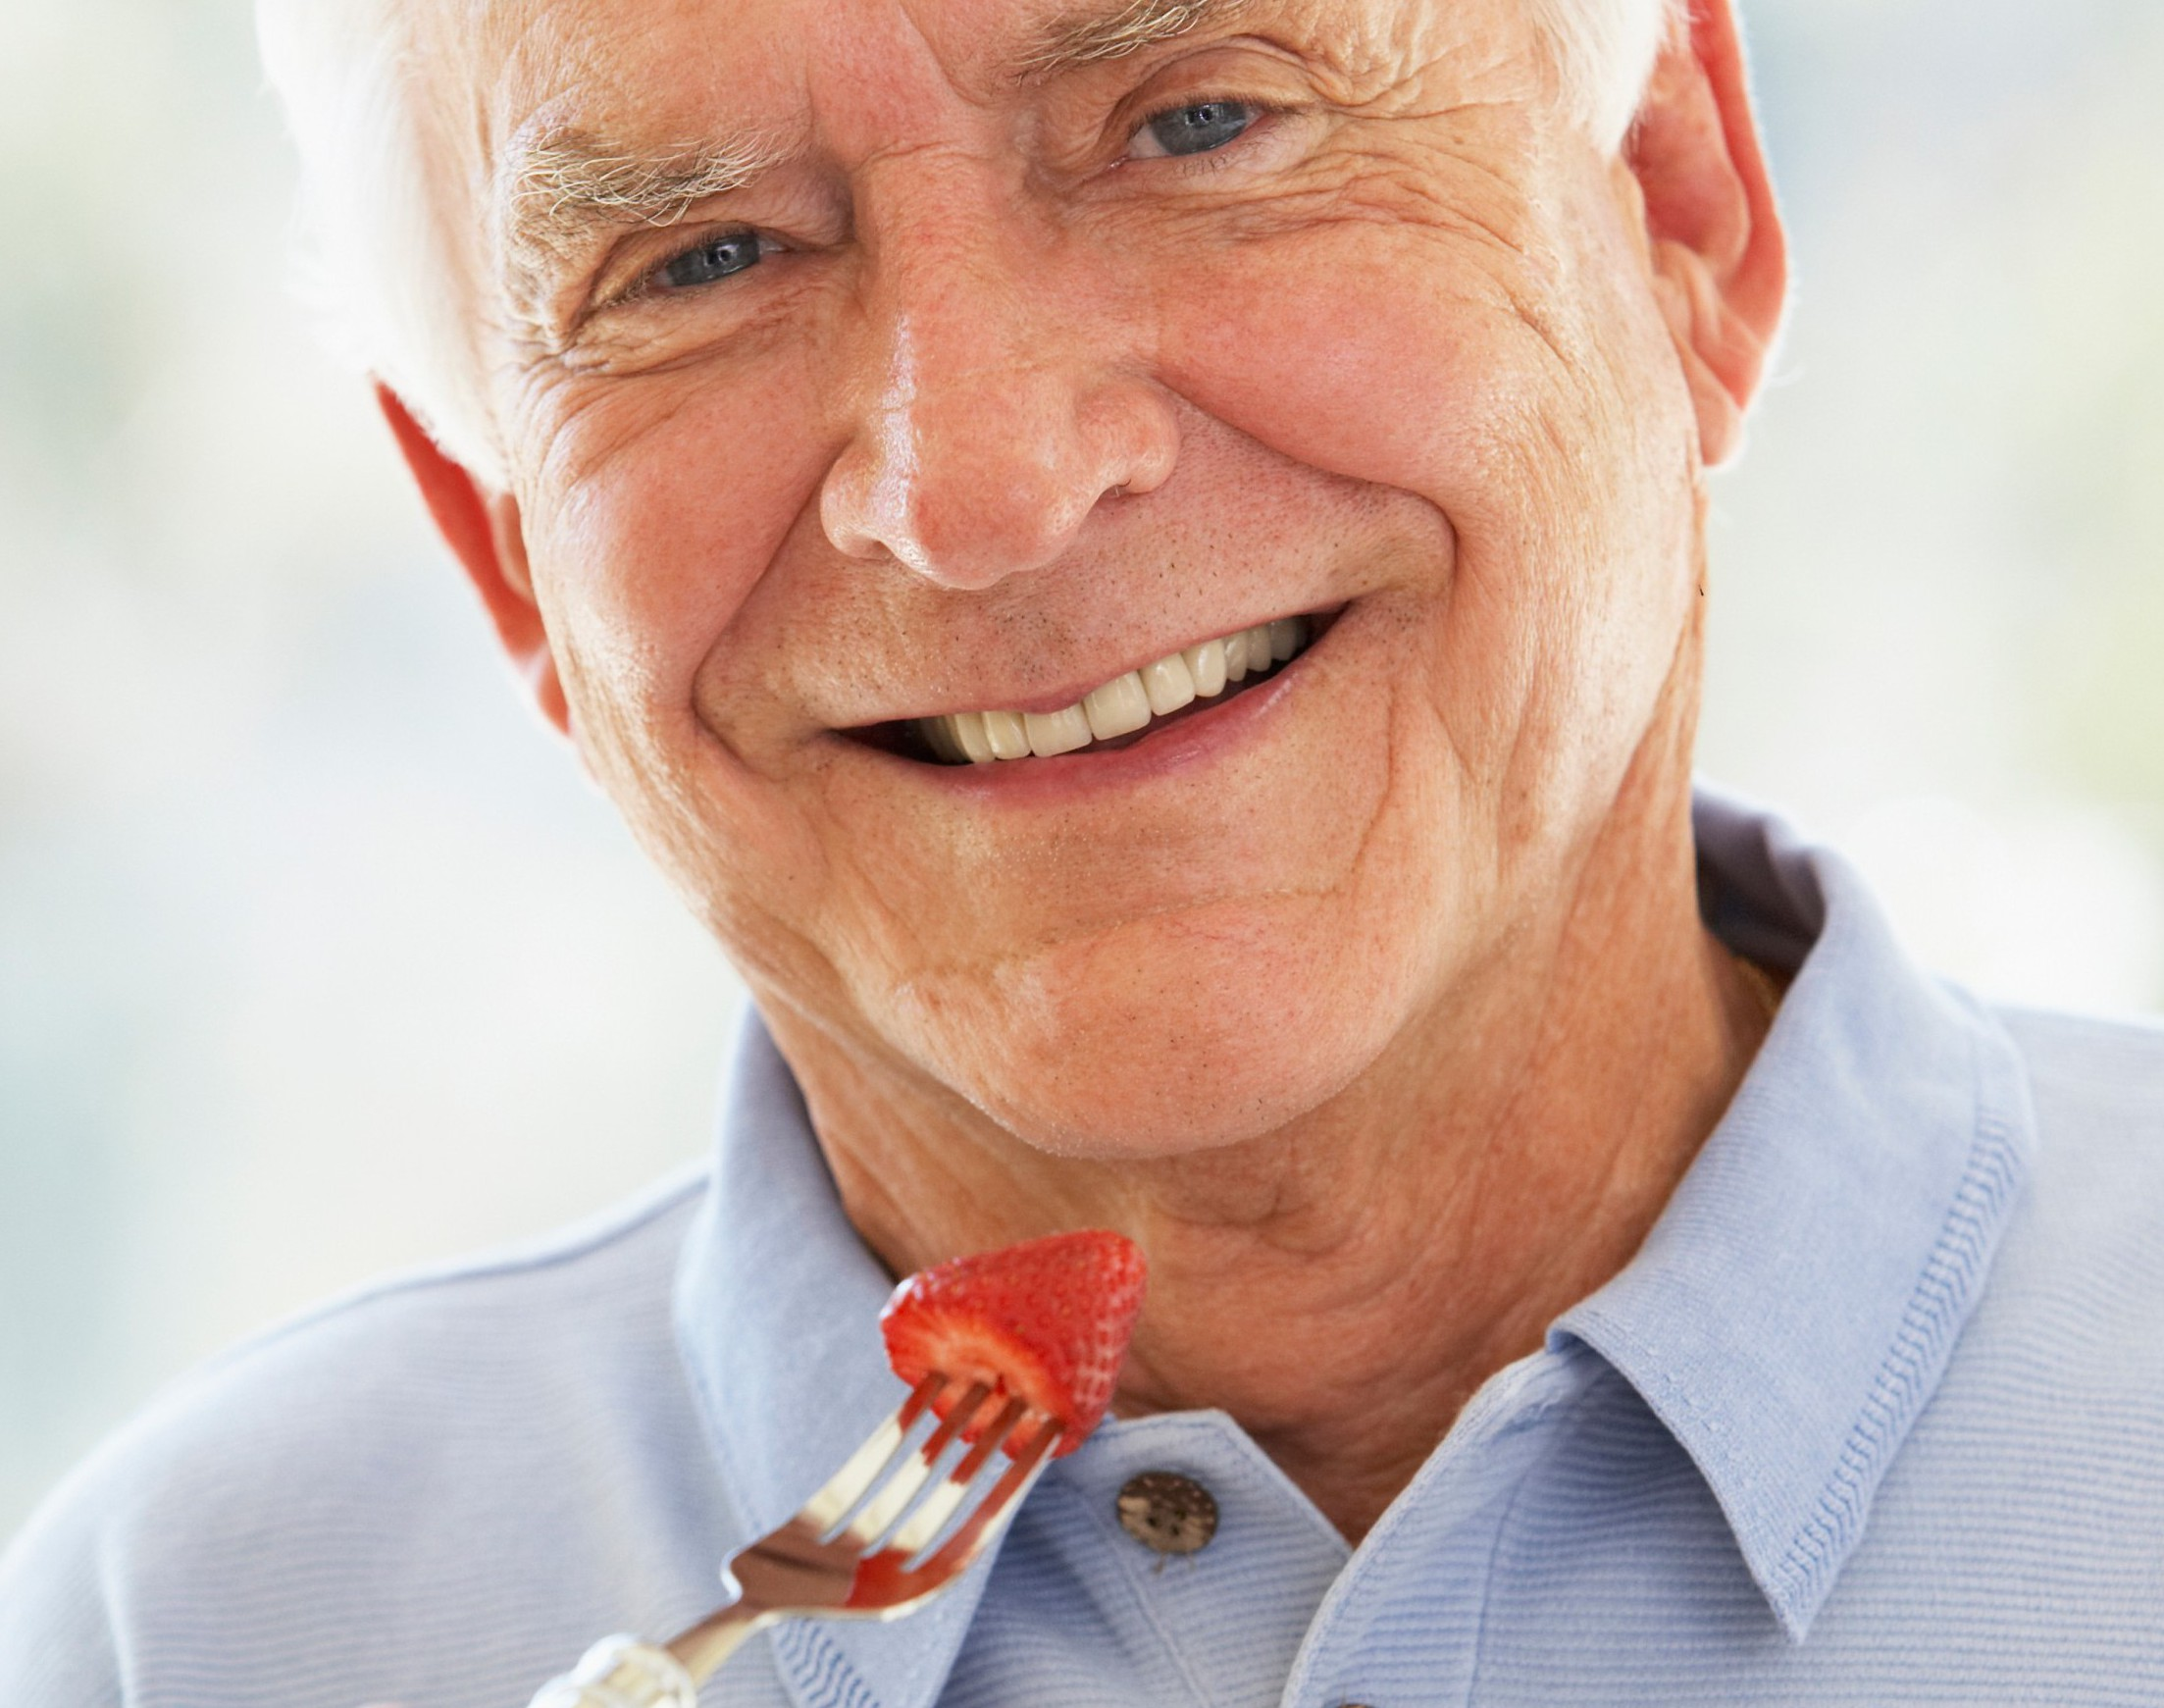 Finding the best diet for prostate health